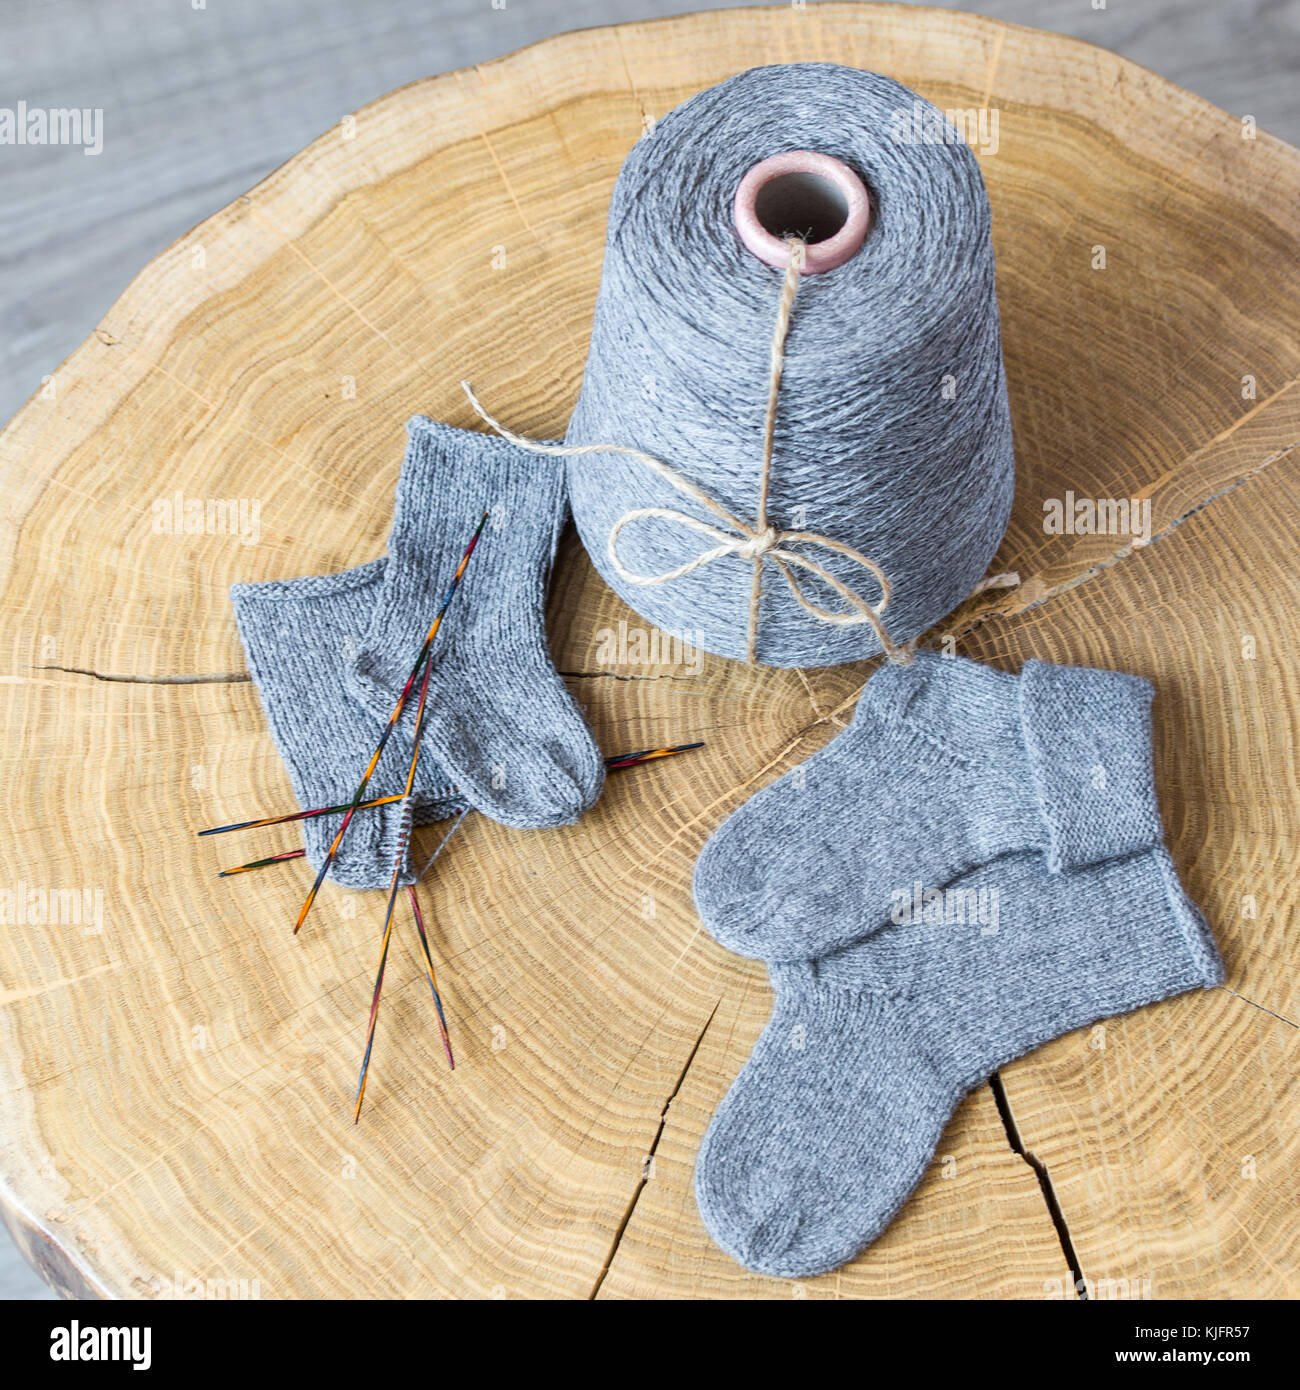 Cone of grey fluffy cashmere, knitting needles and newborn baby ...